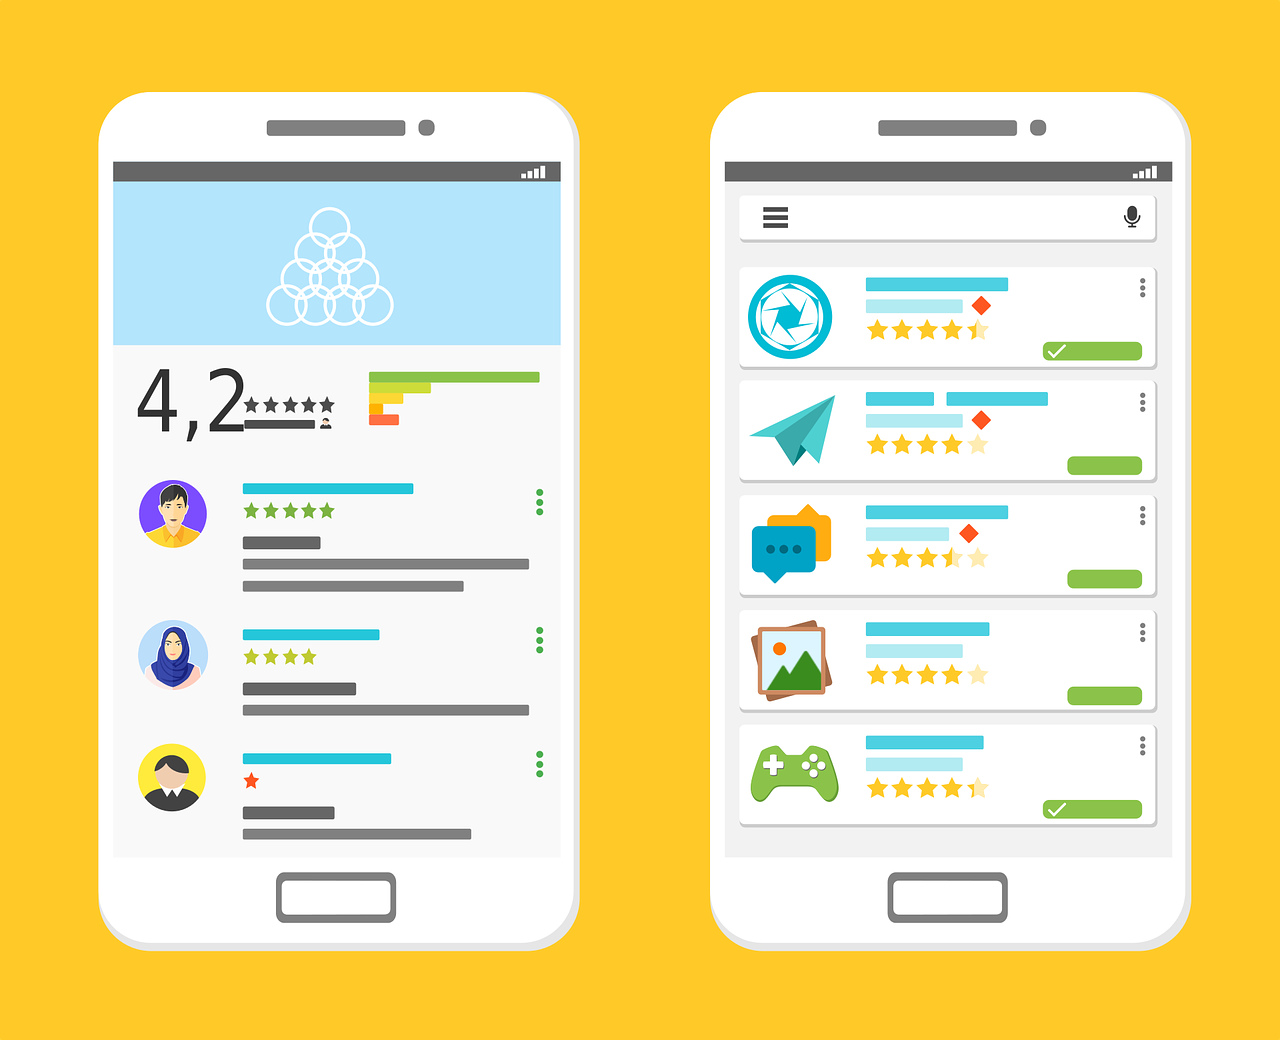 3 Most Well Designed Android Games of All Time